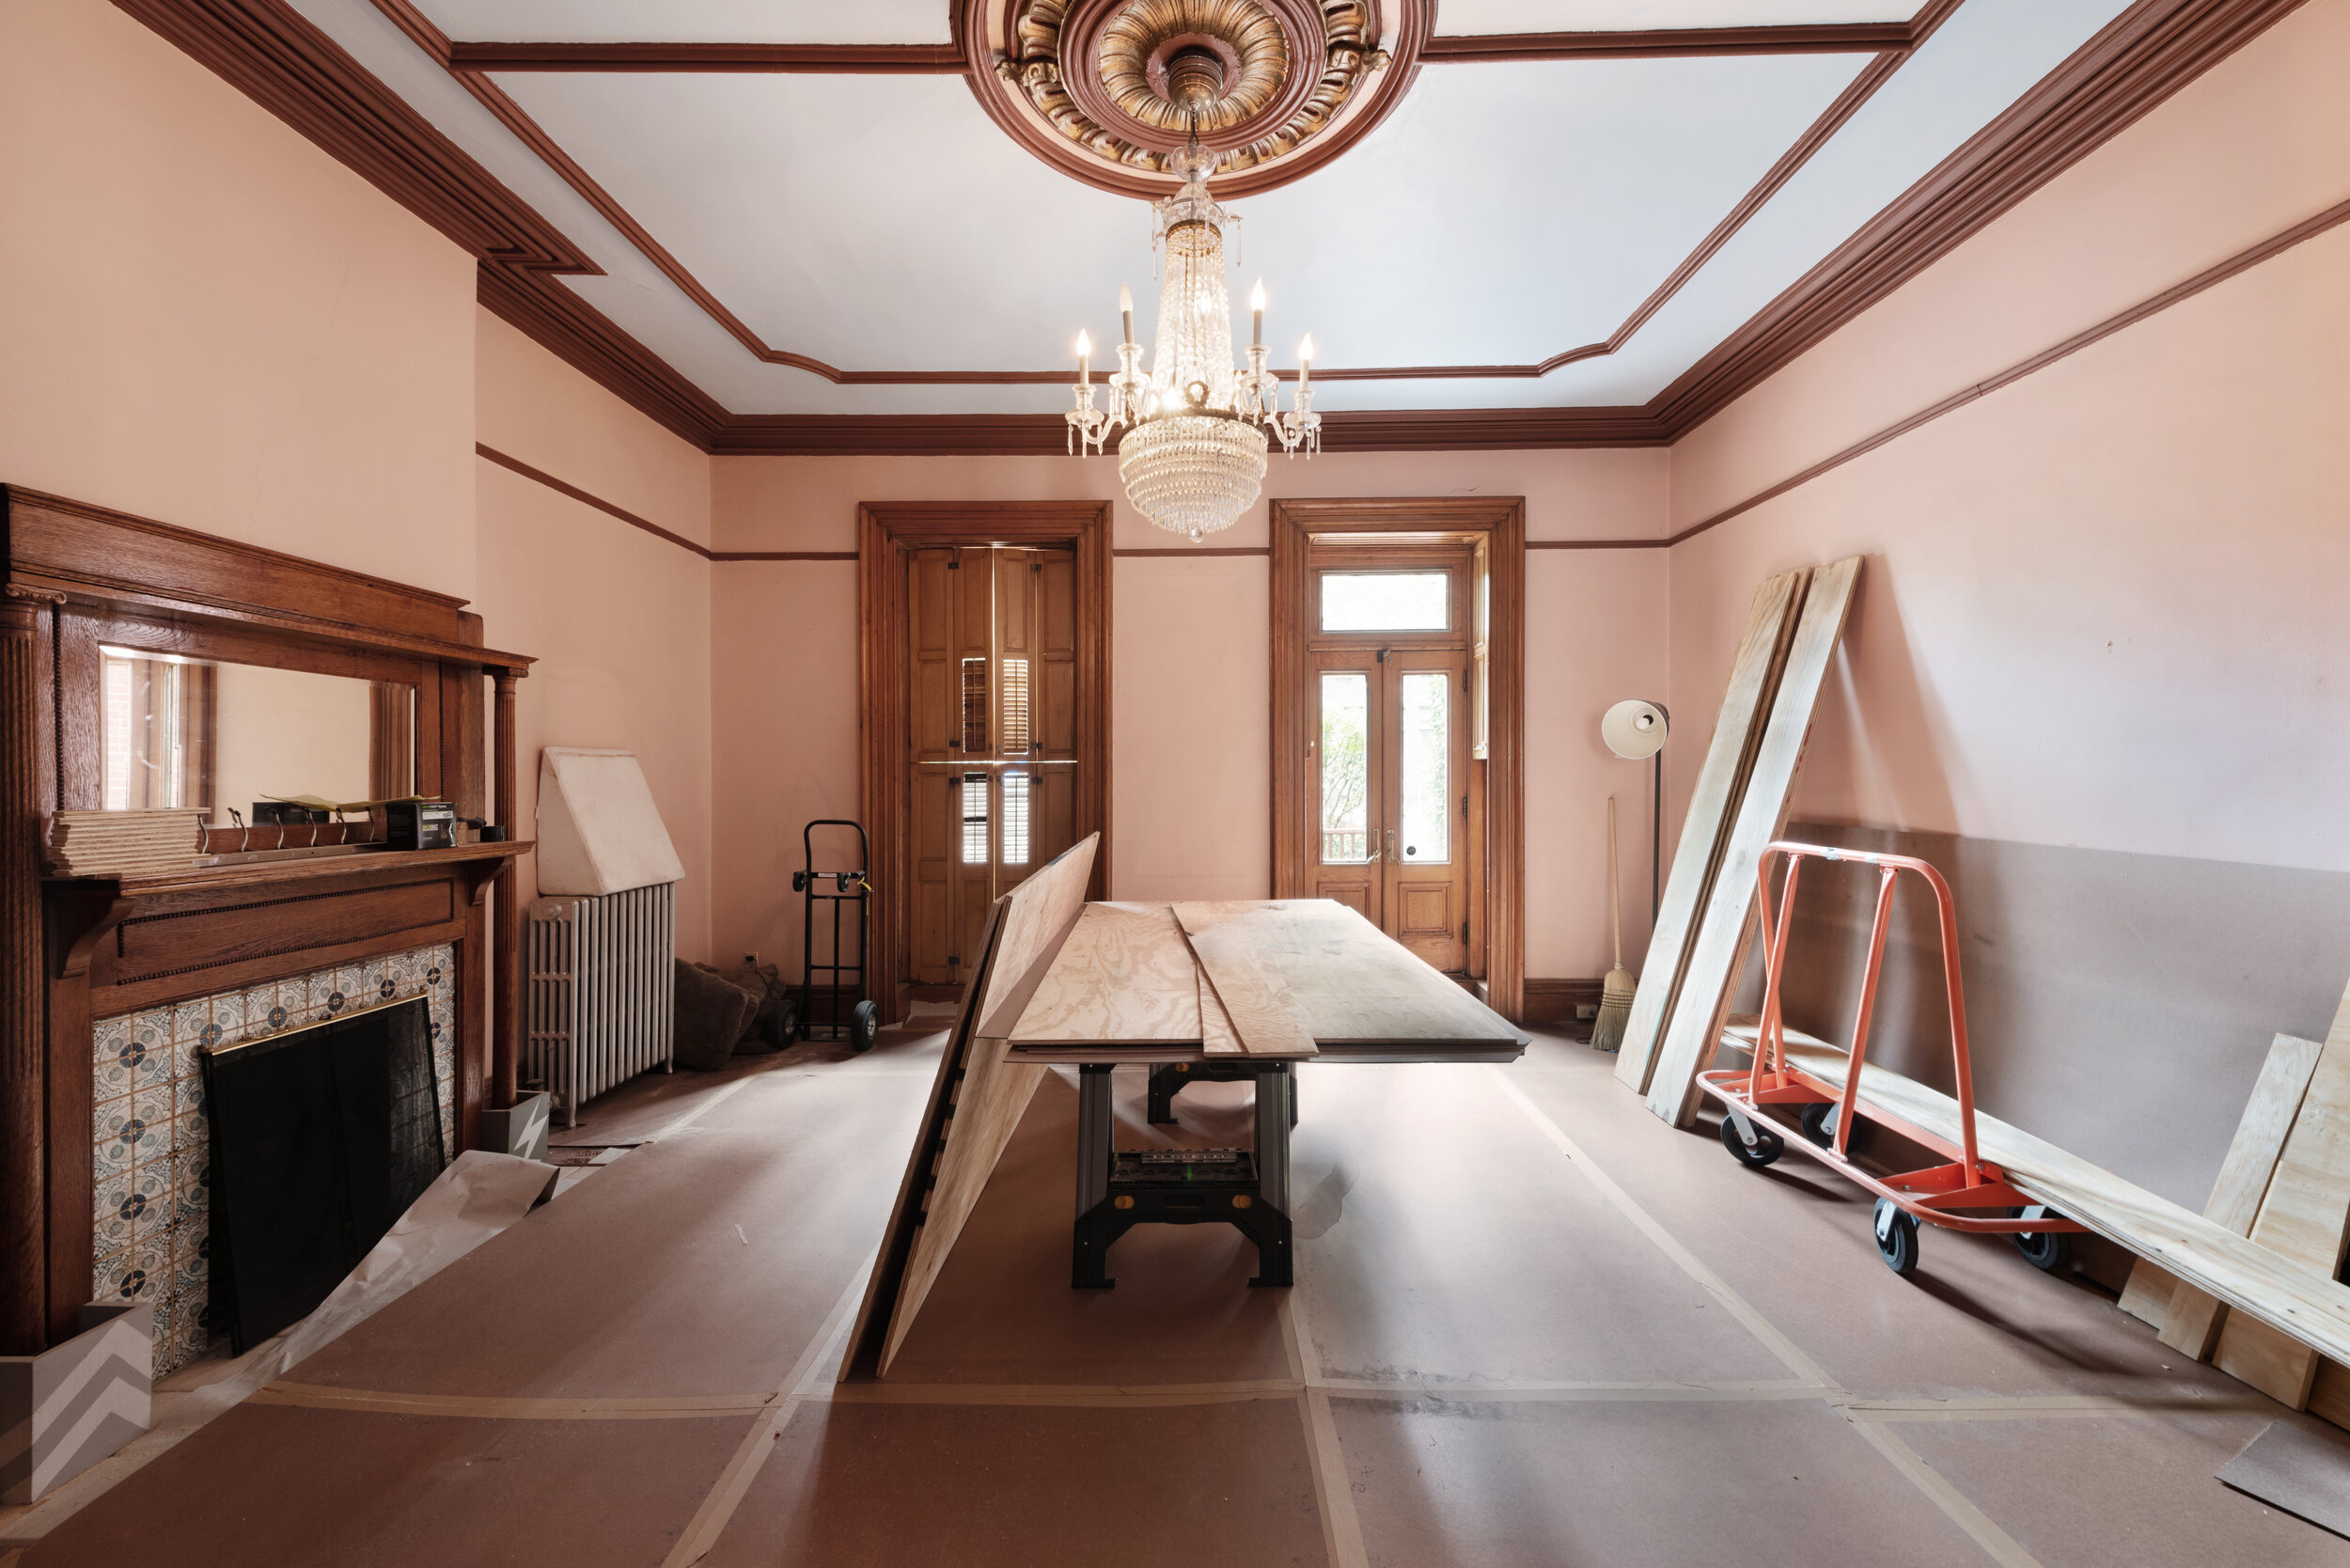 Natural light streams through the parlor as the home is prepped for renovations.